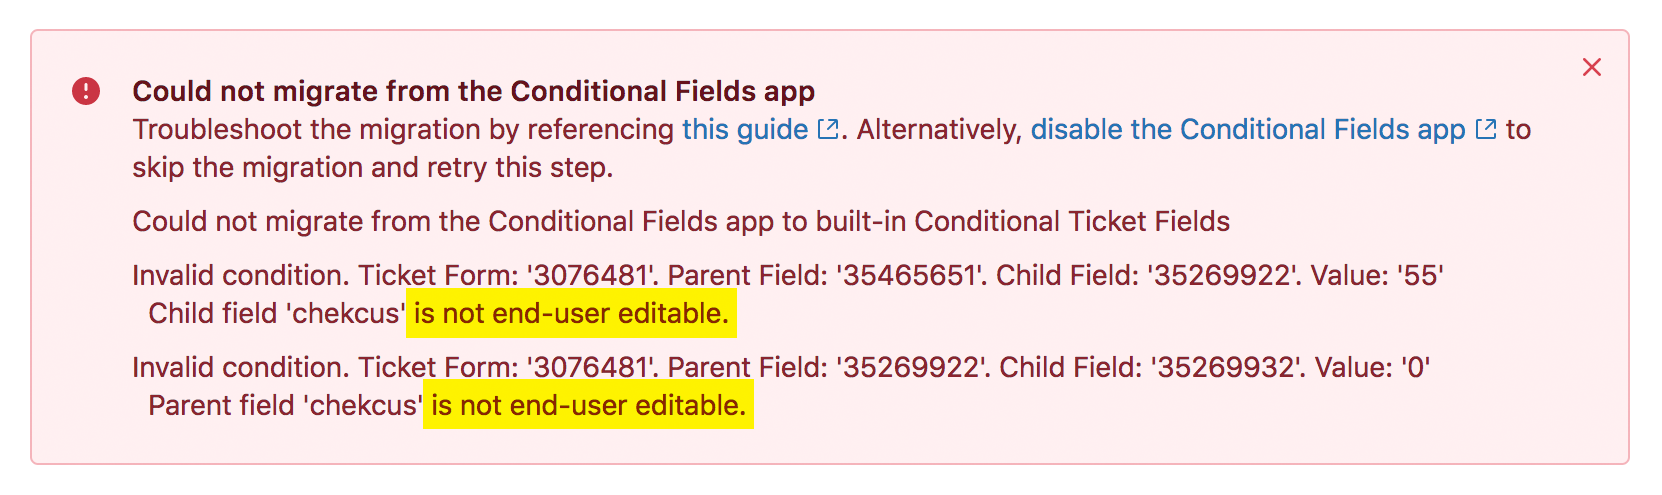 Migrating to conditional ticket fields (Professional Add-on and